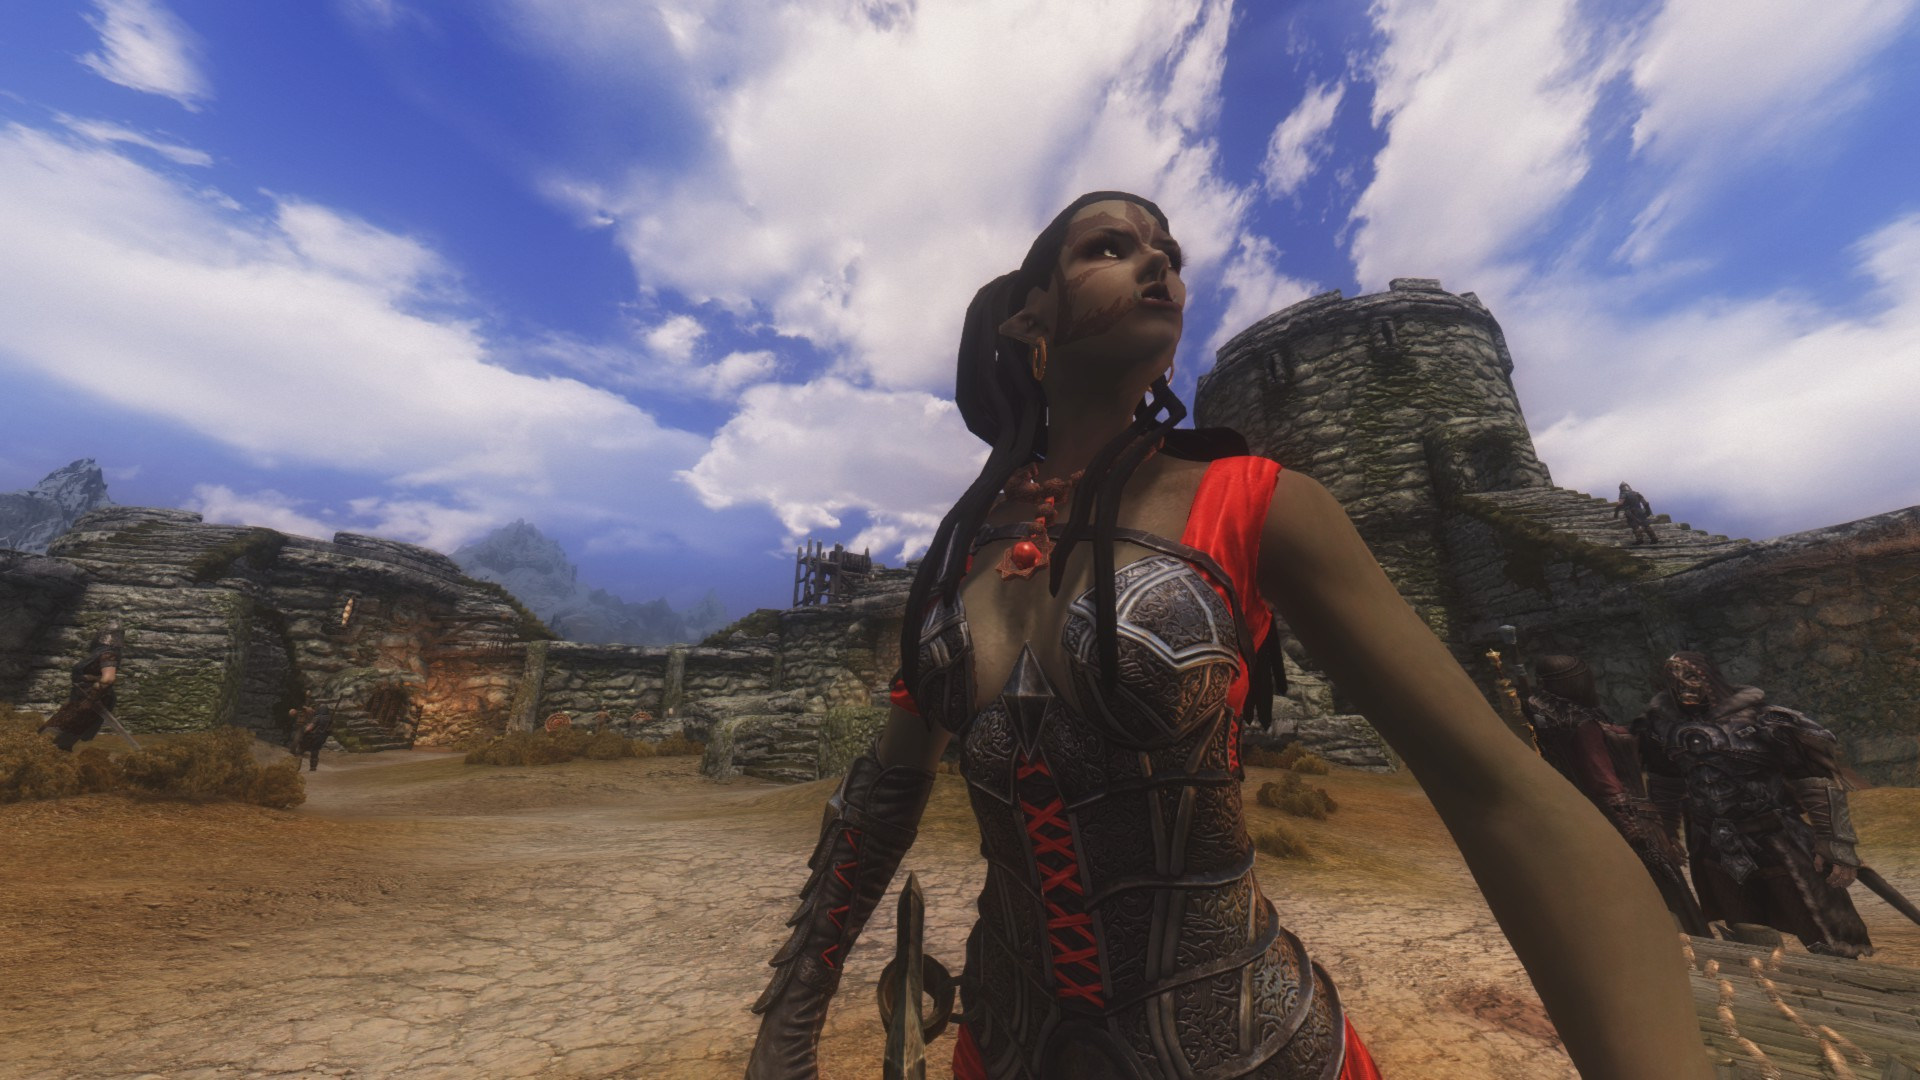 Game romance mod erotic gallery